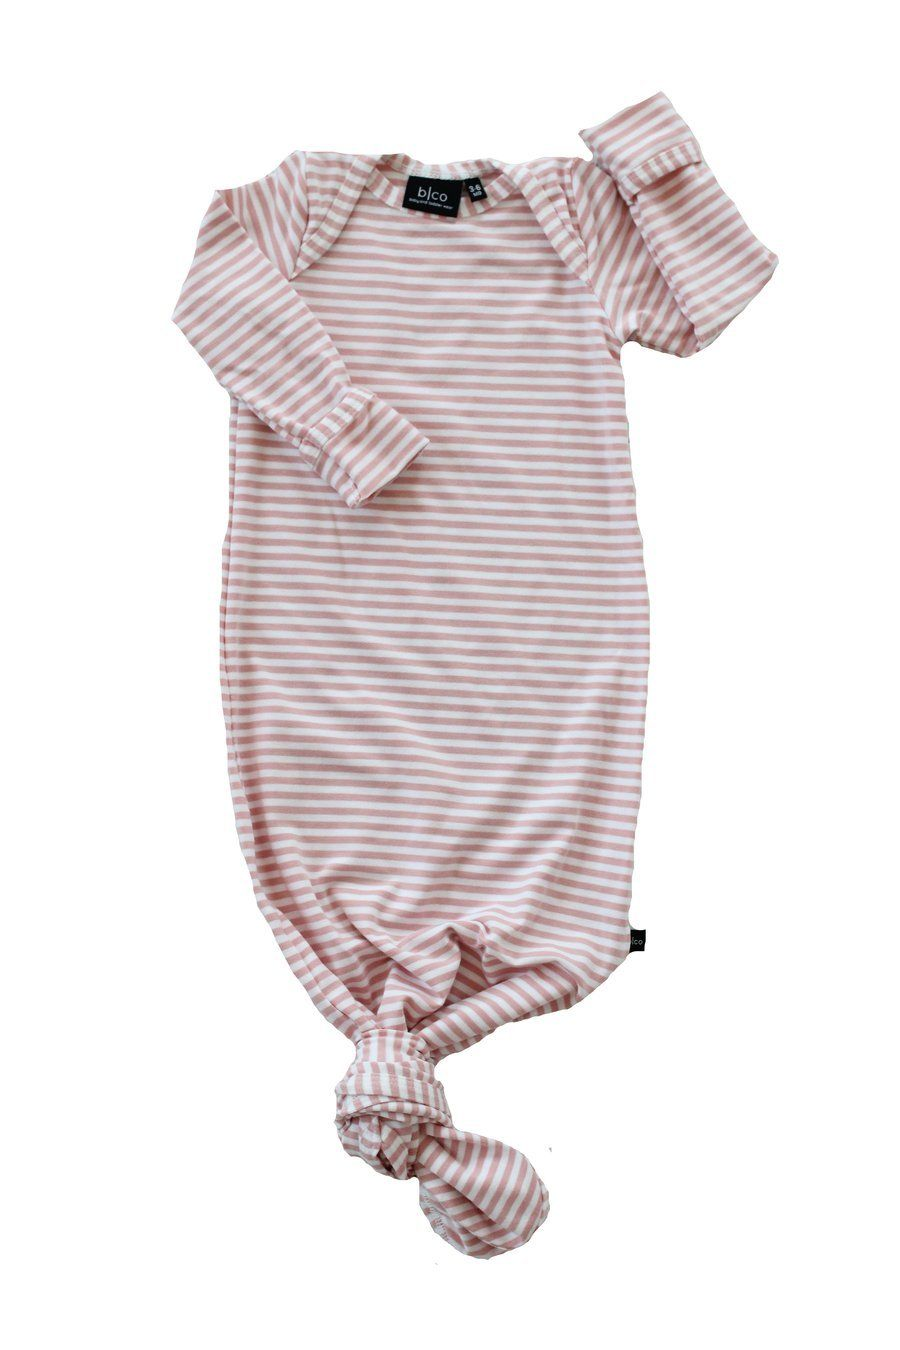 60dbcf270 Knotted Sleeper | Blush Stripe #baby #babies #clothing #clothes  #accessories #cute #kids #infants #adorable #fashion